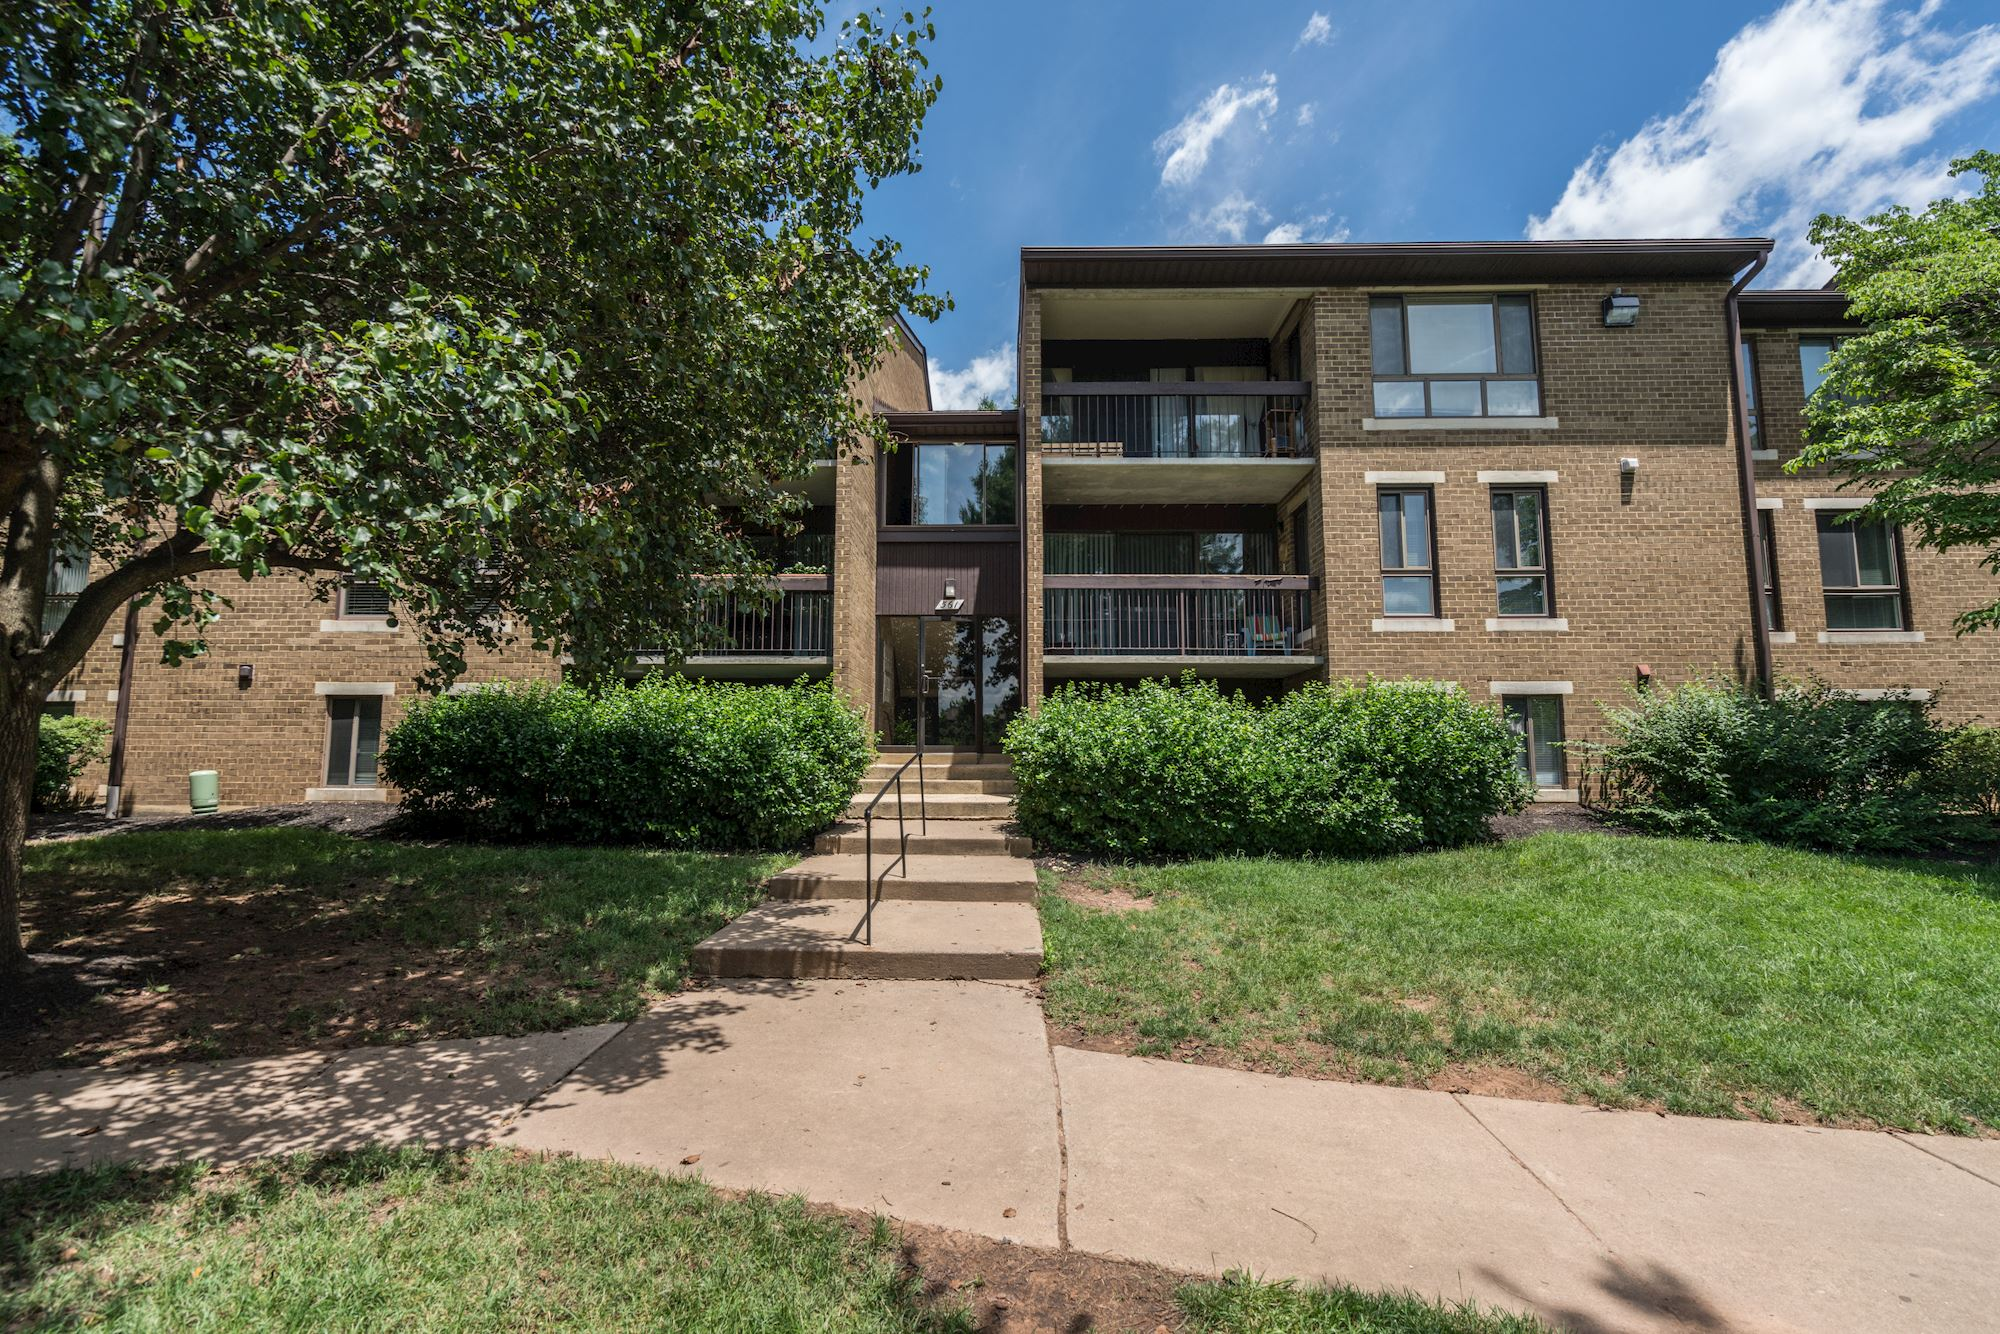 NEW LISTING: Rarely Available 3 BD Unit Near Downtown Herndon